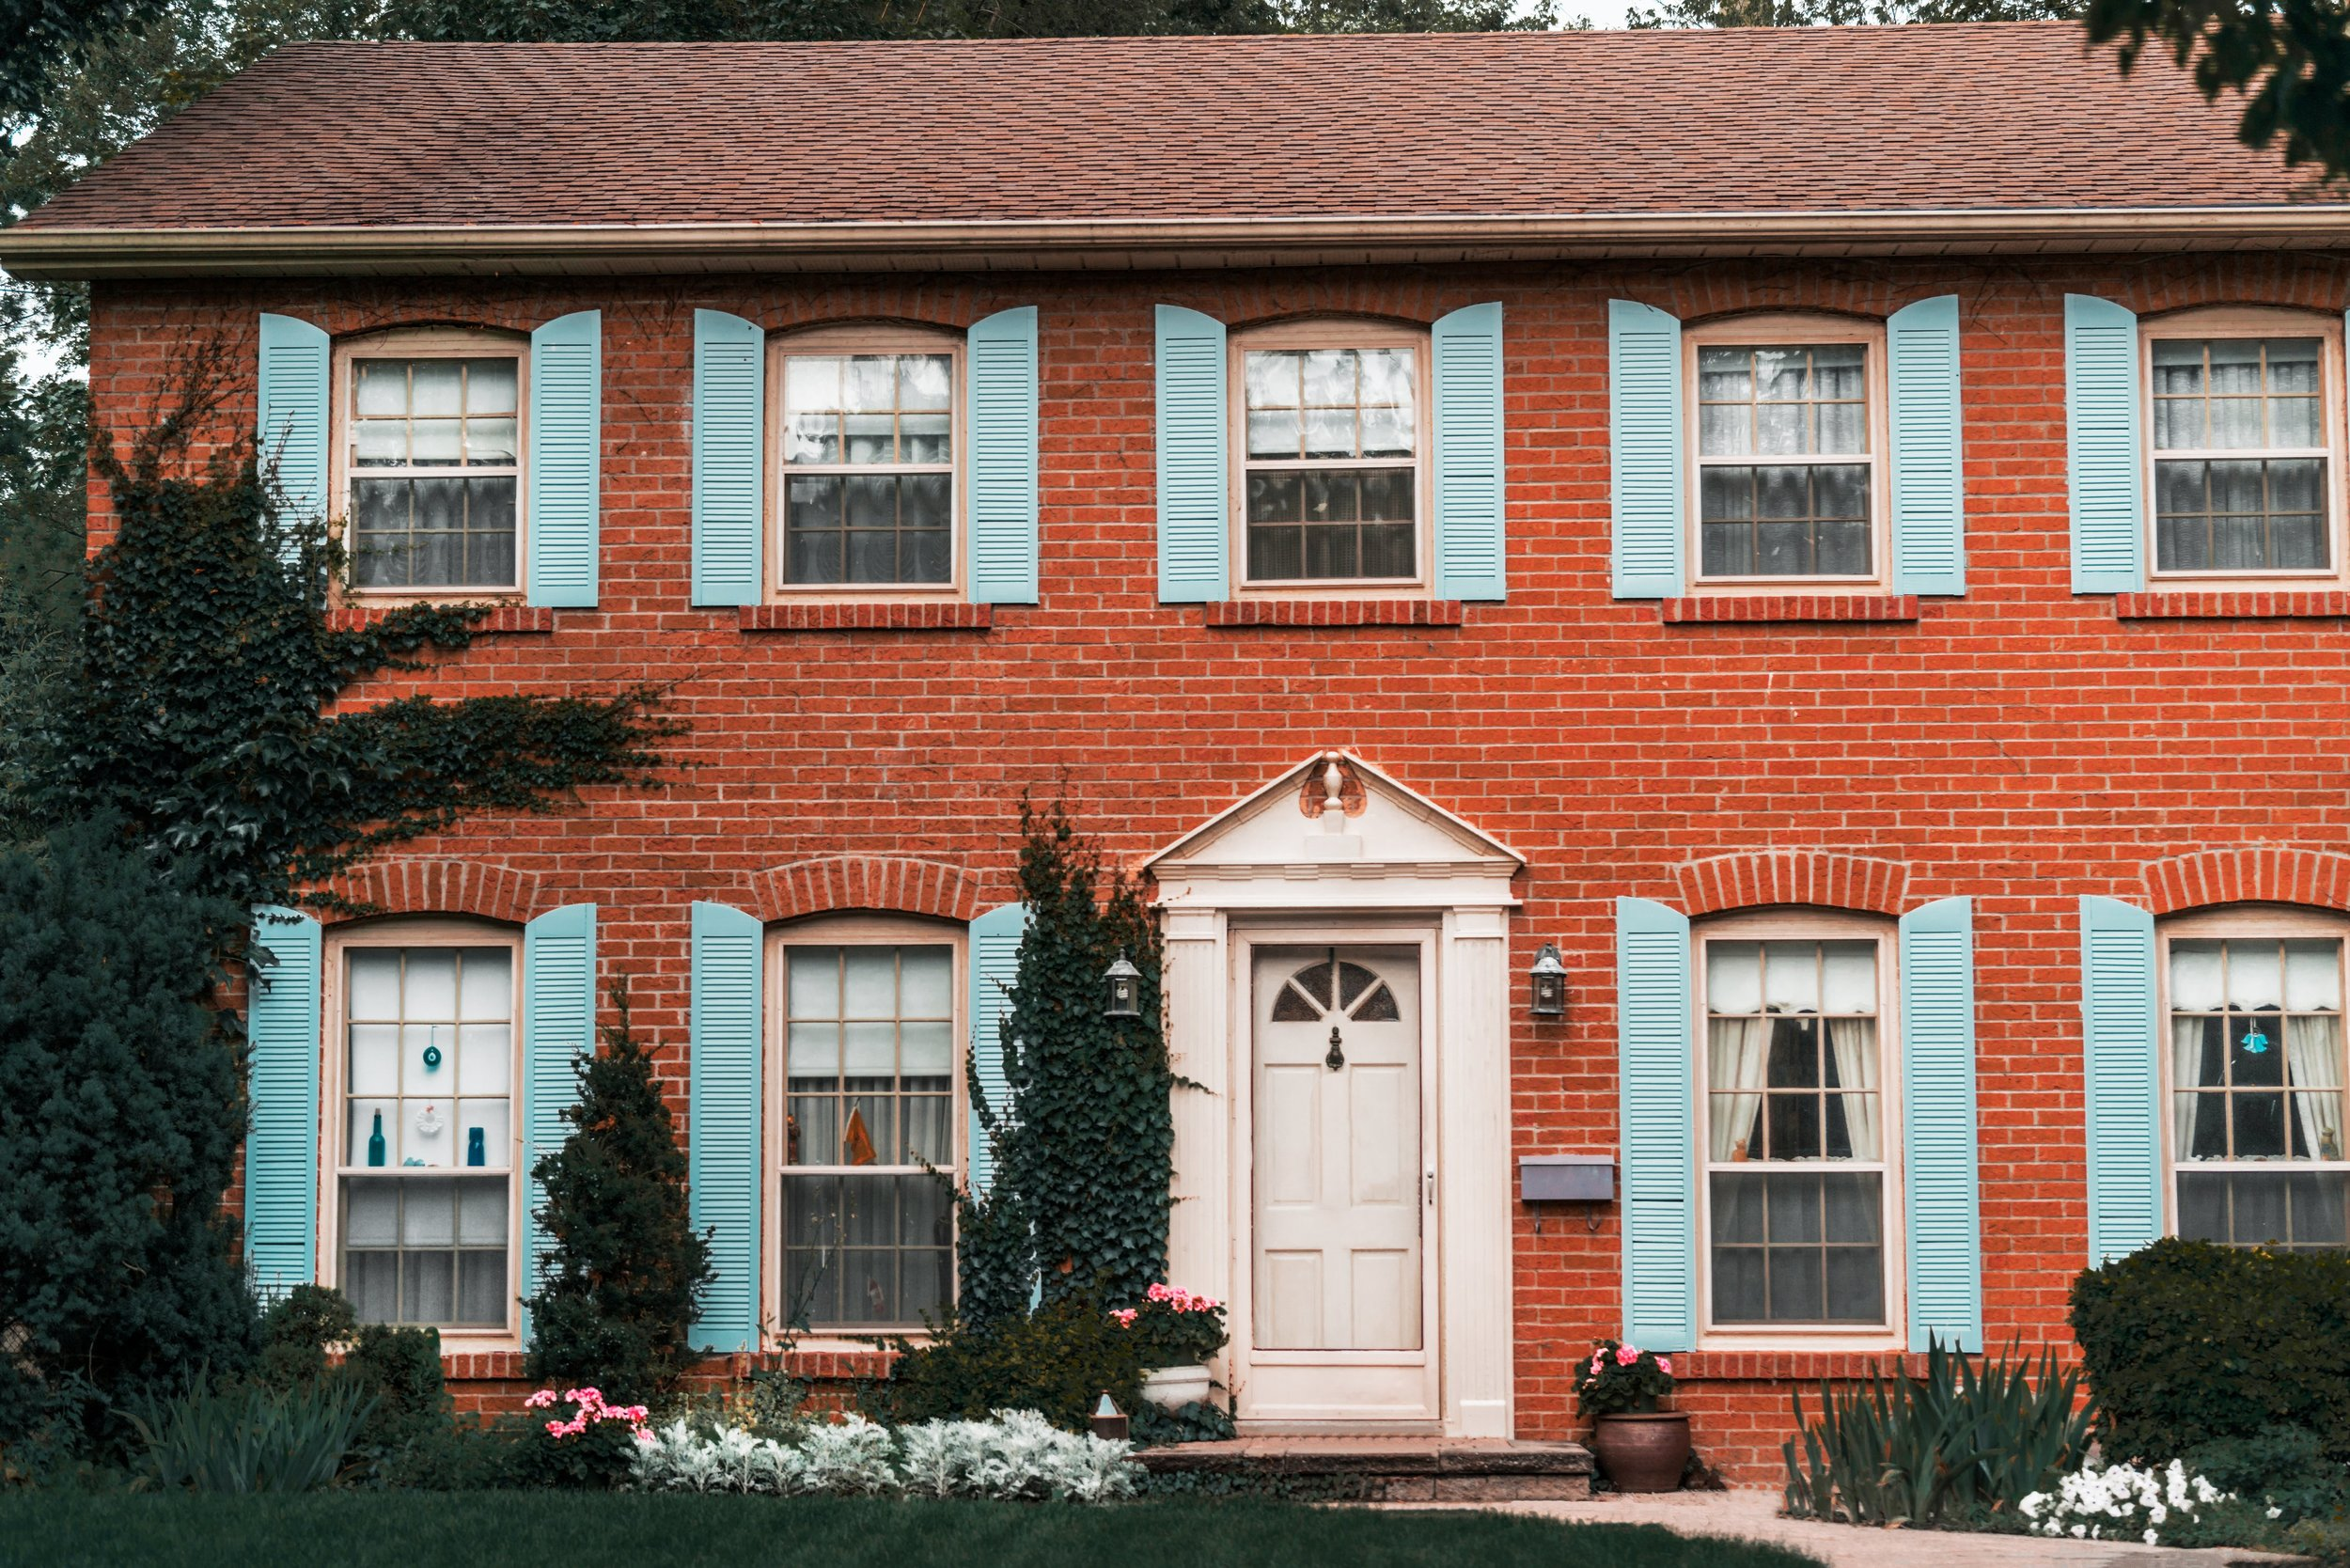 Red brick house with blue shutters.